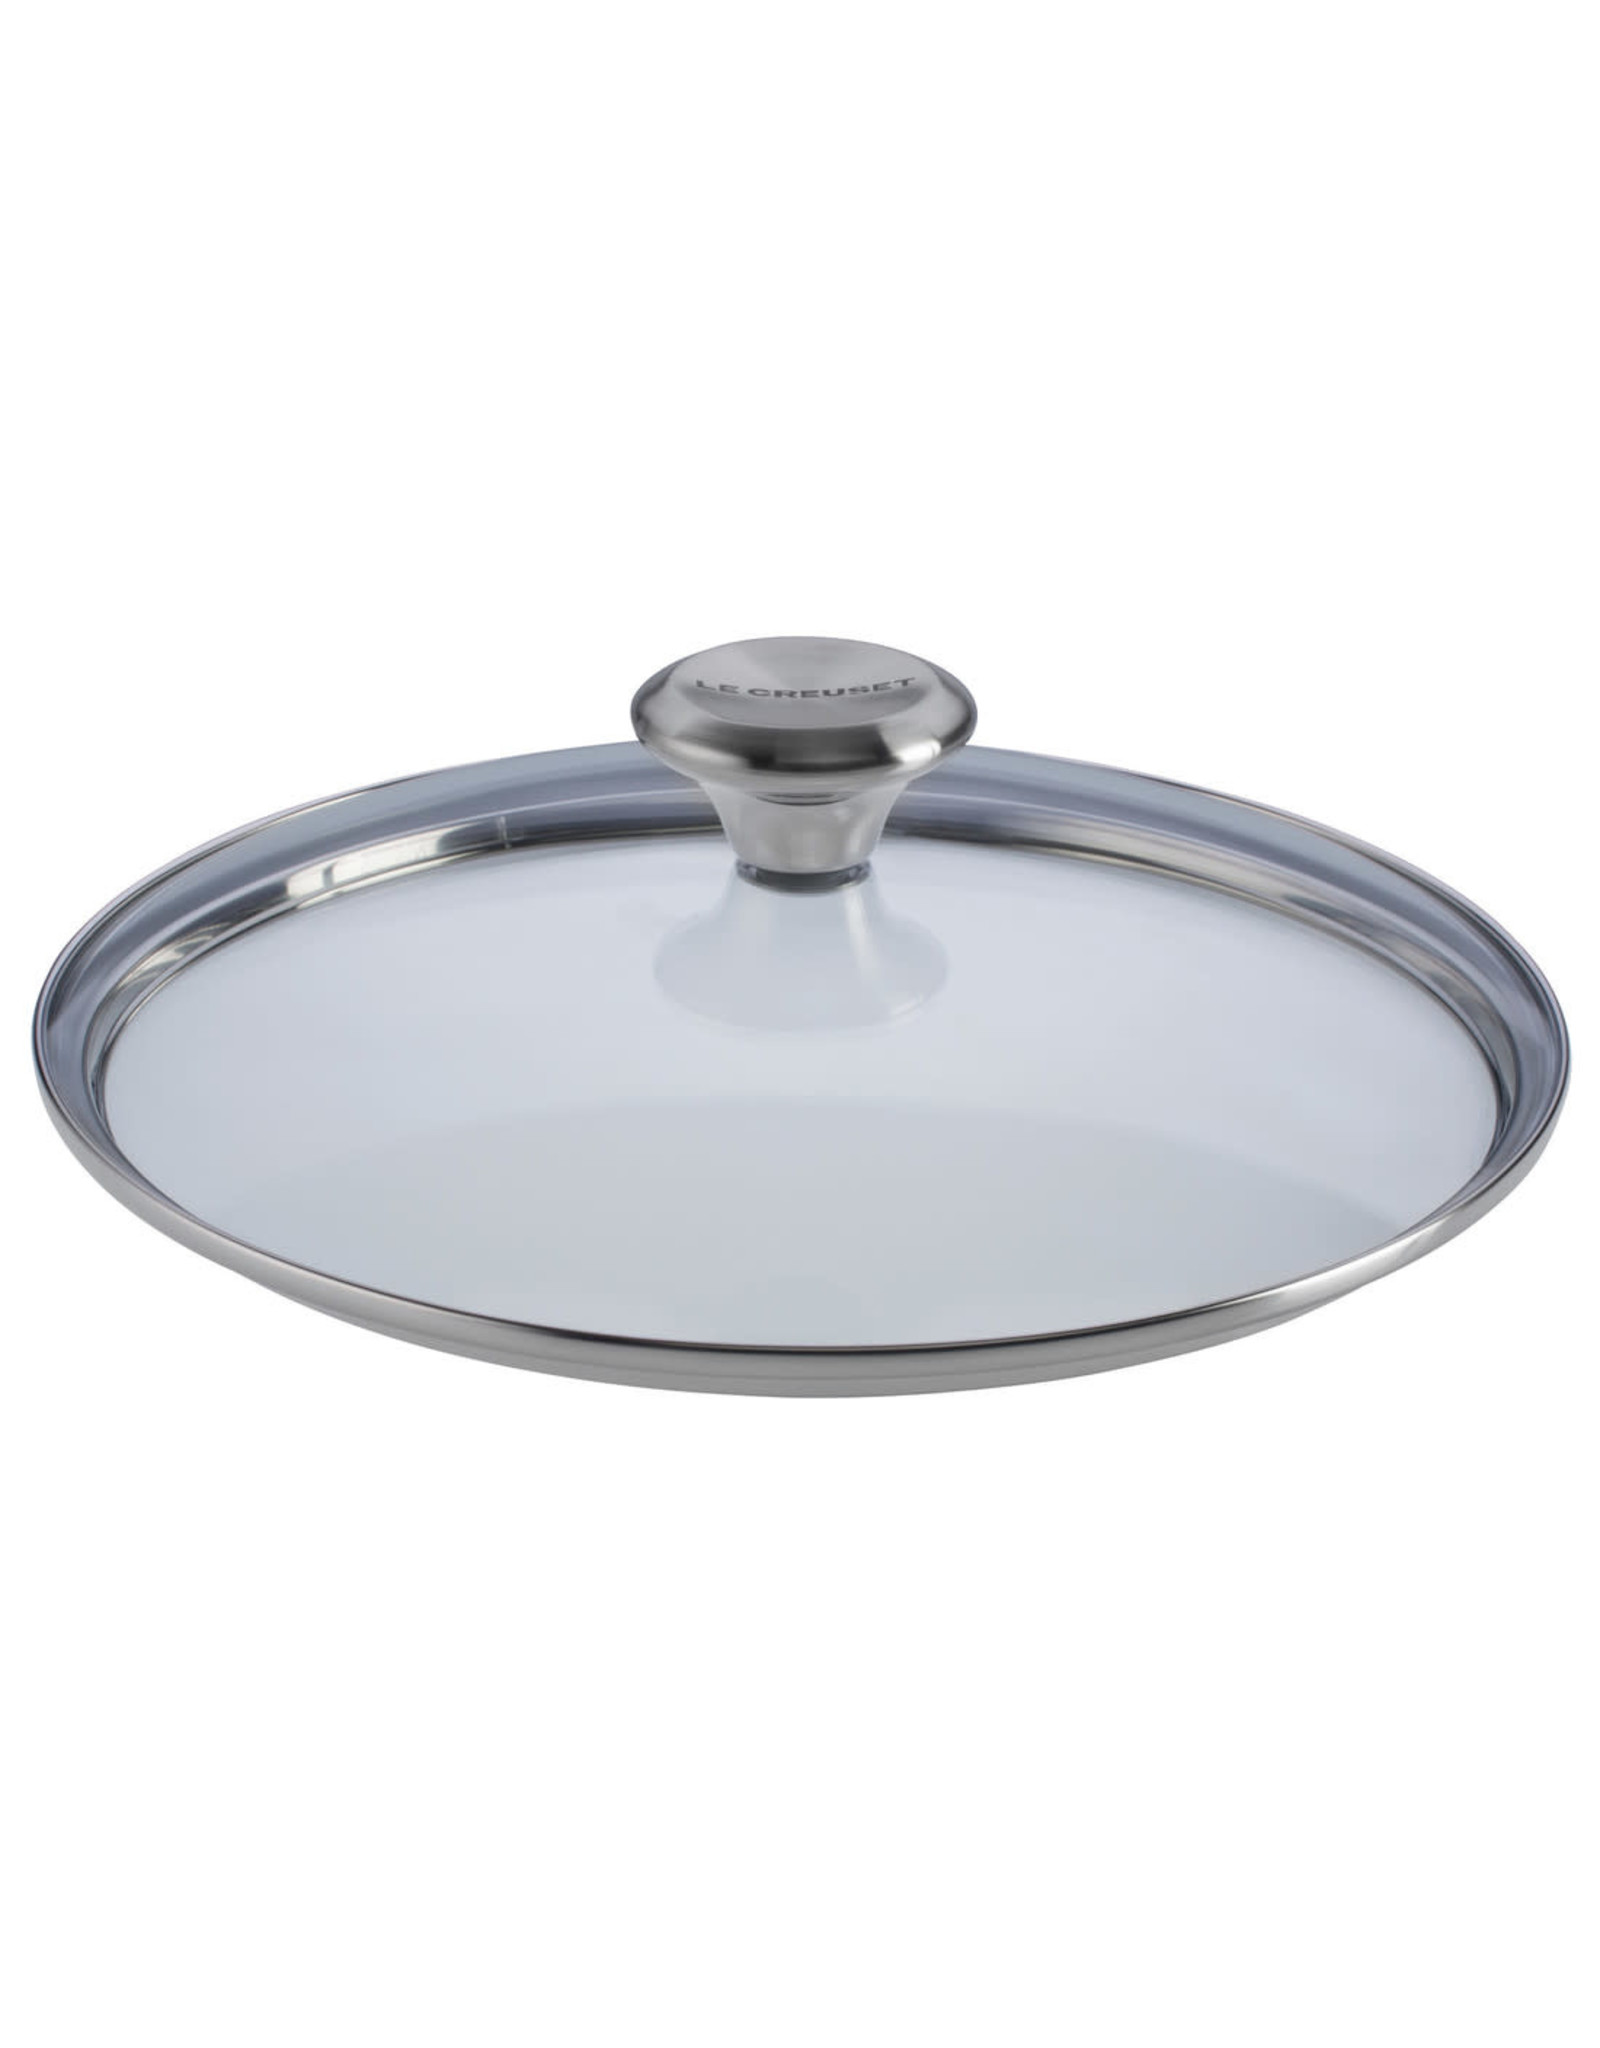 "Le Creuset Le Creuset 9.5"" Glass Lid with Stainless Steel Knob (fits TNS & SS)"